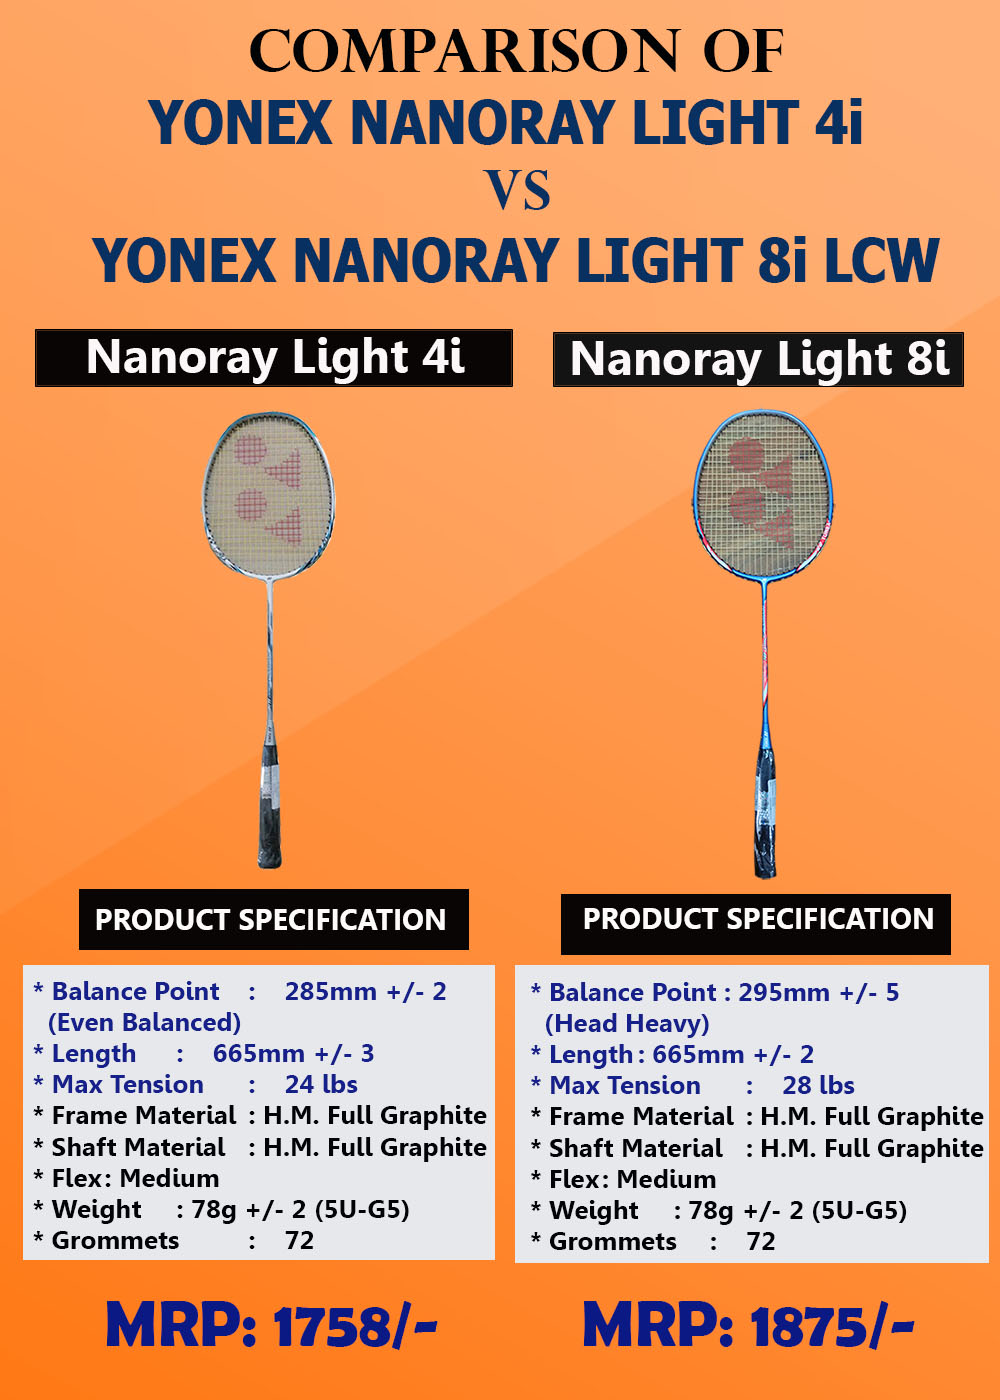 Comparison of Yonex Nanoray Light 4i VS Nanoray Light 8i_2